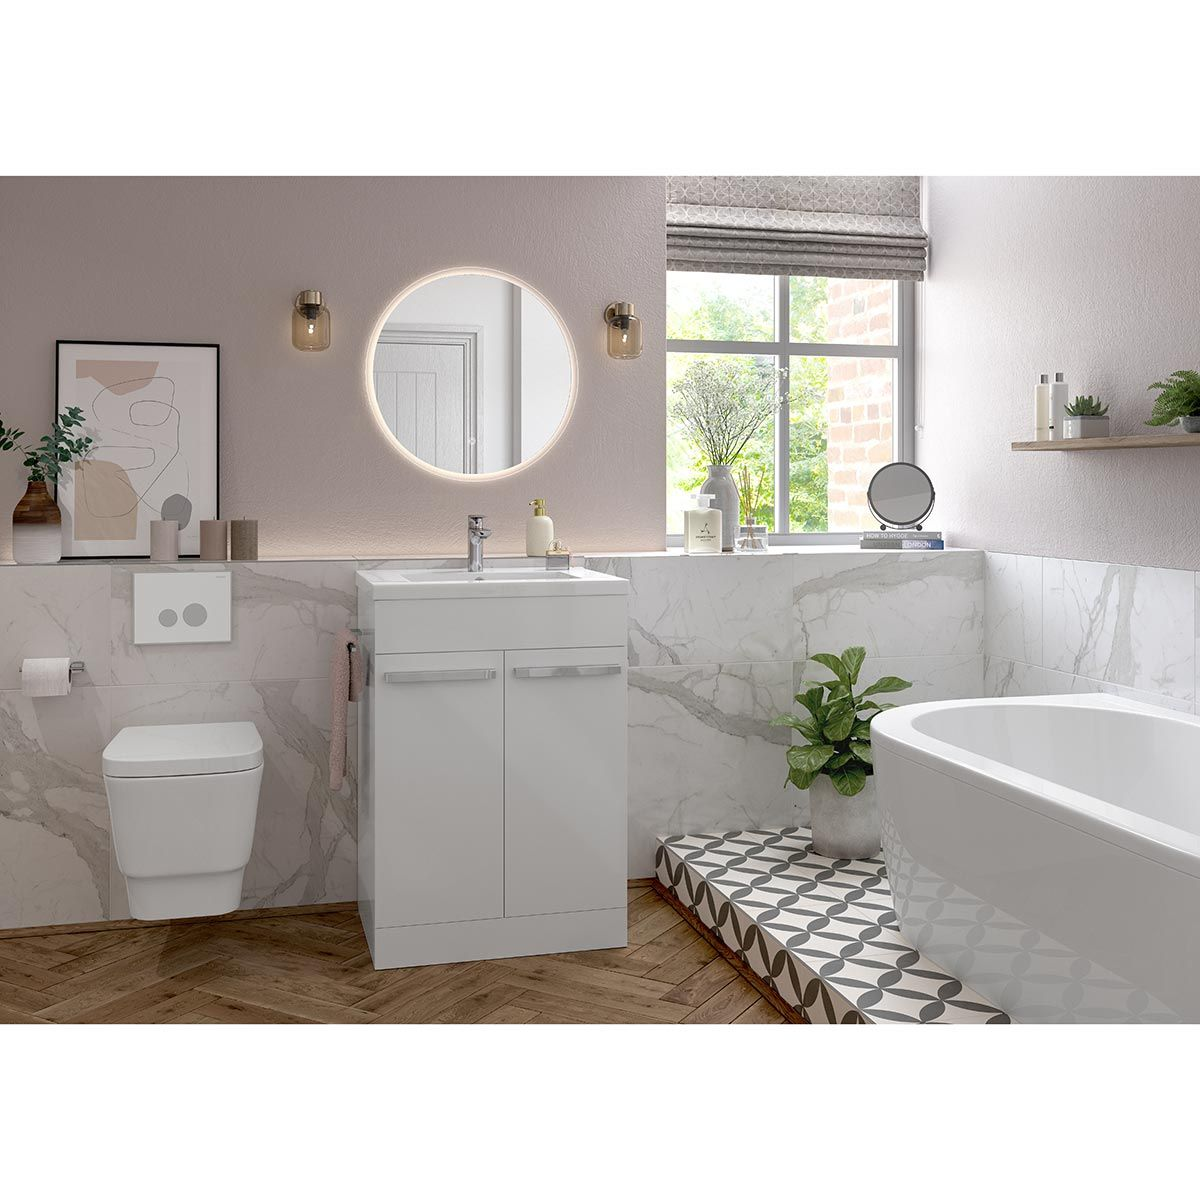 Morina White Gloss with Inset Basin Lifestyle